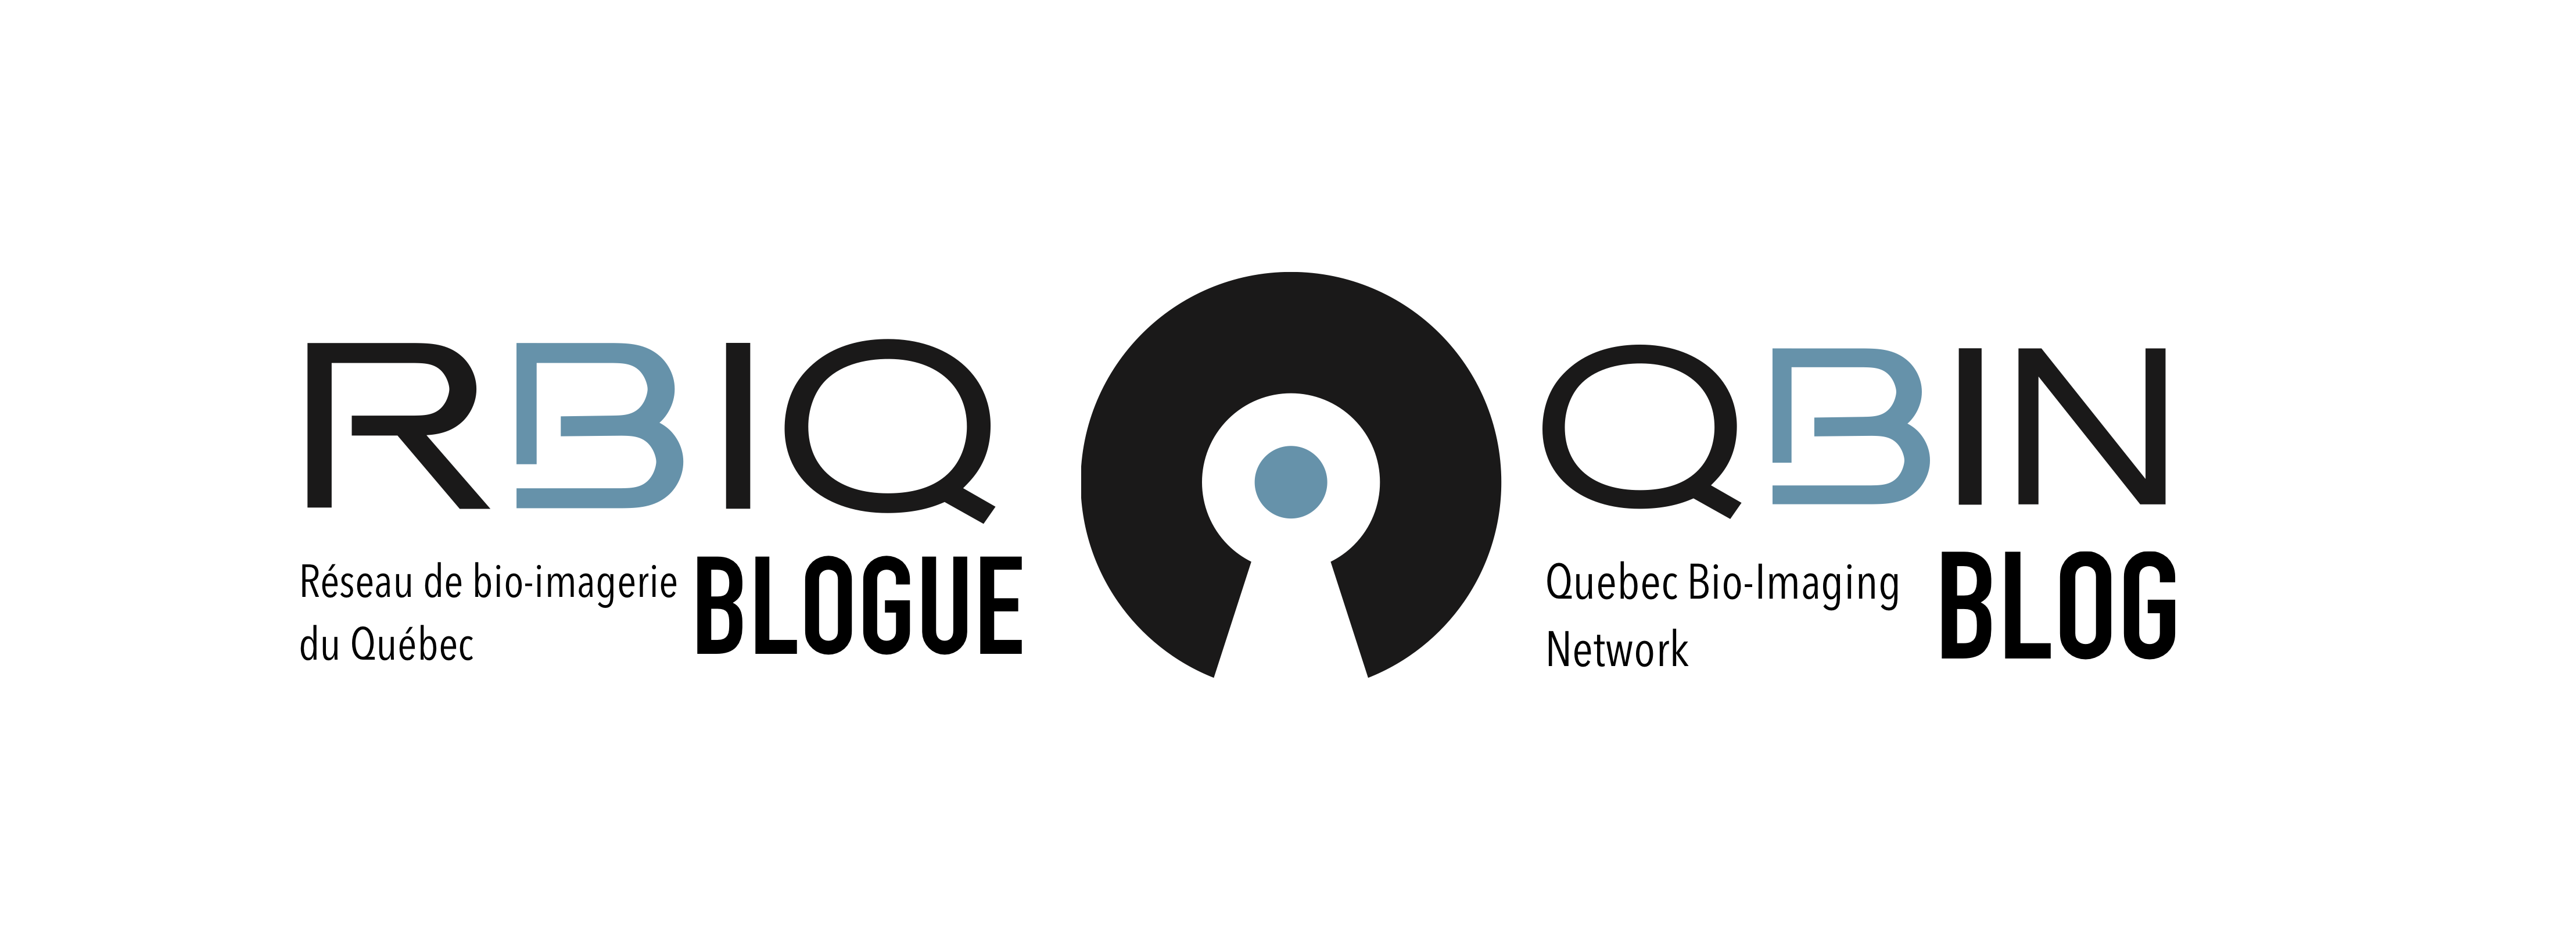 Blogue du RBIQ | QBIN blog